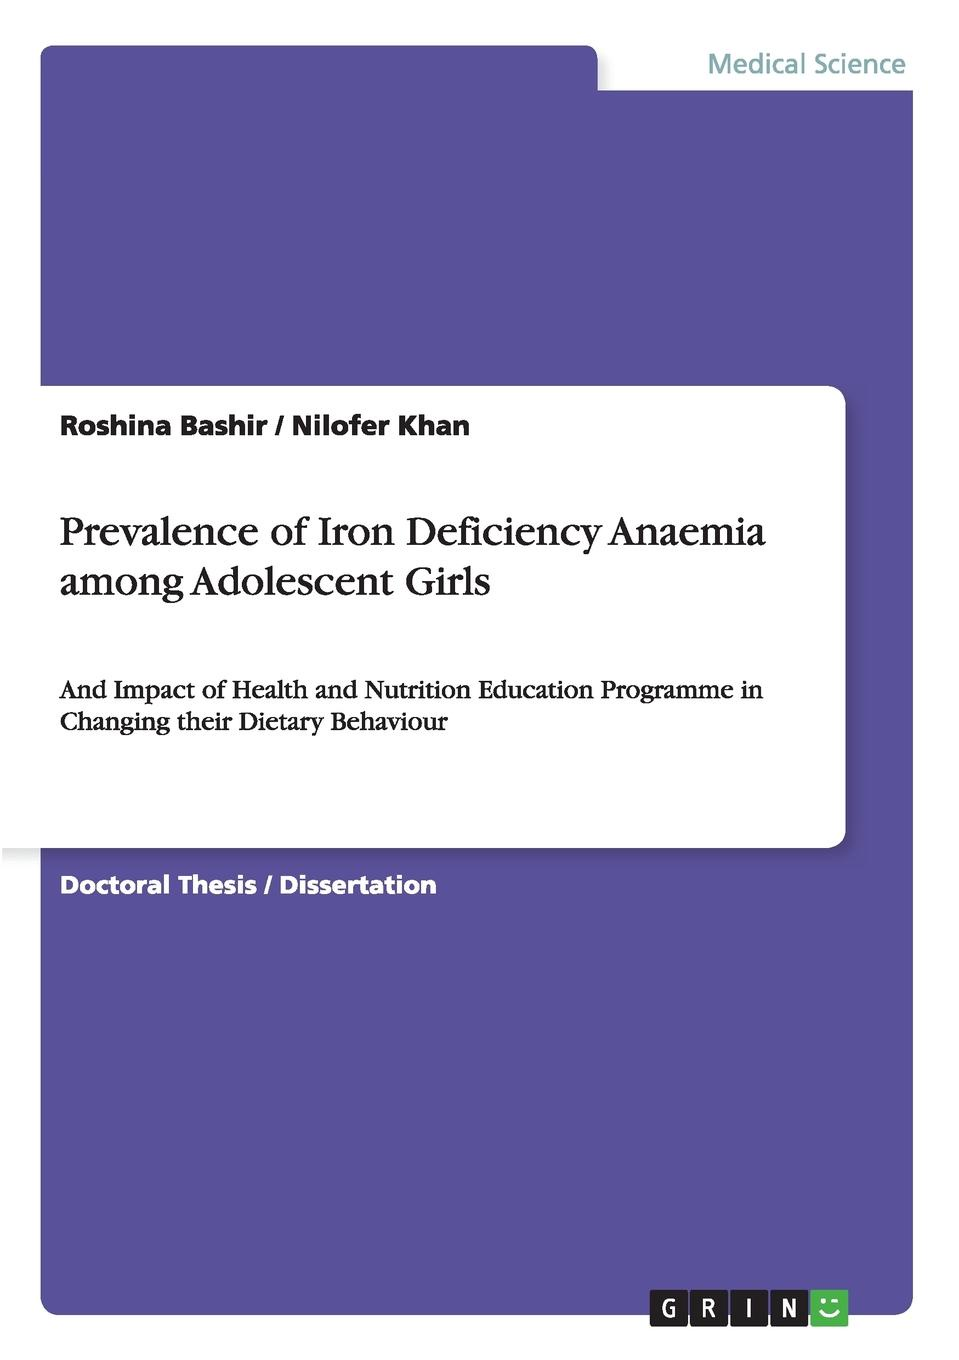 Roshina Bashir, Nilofer Khan Prevalence of Iron Deficiency Anaemia among Adolescent Girls health and risk issues in adolescent behavior